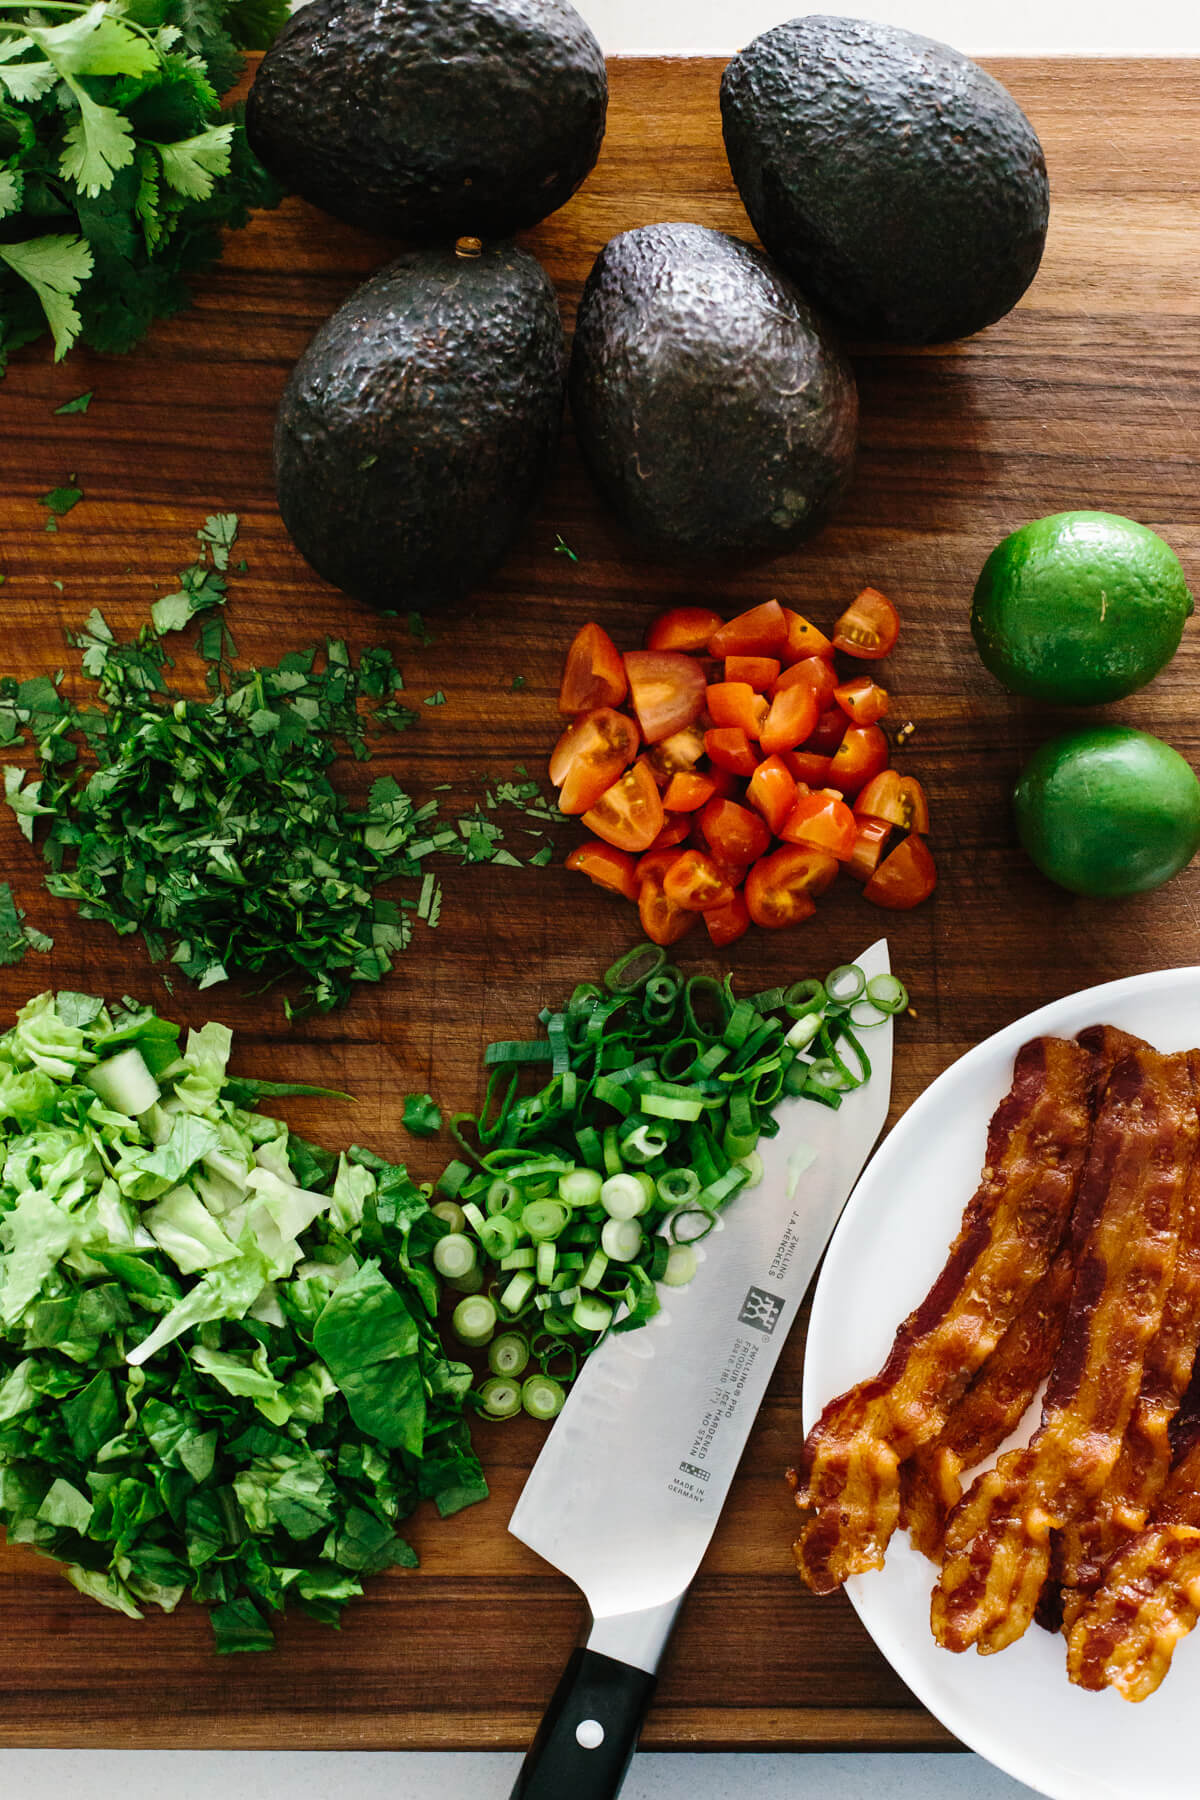 The ingredients for BLT guacamole on a cutting board.